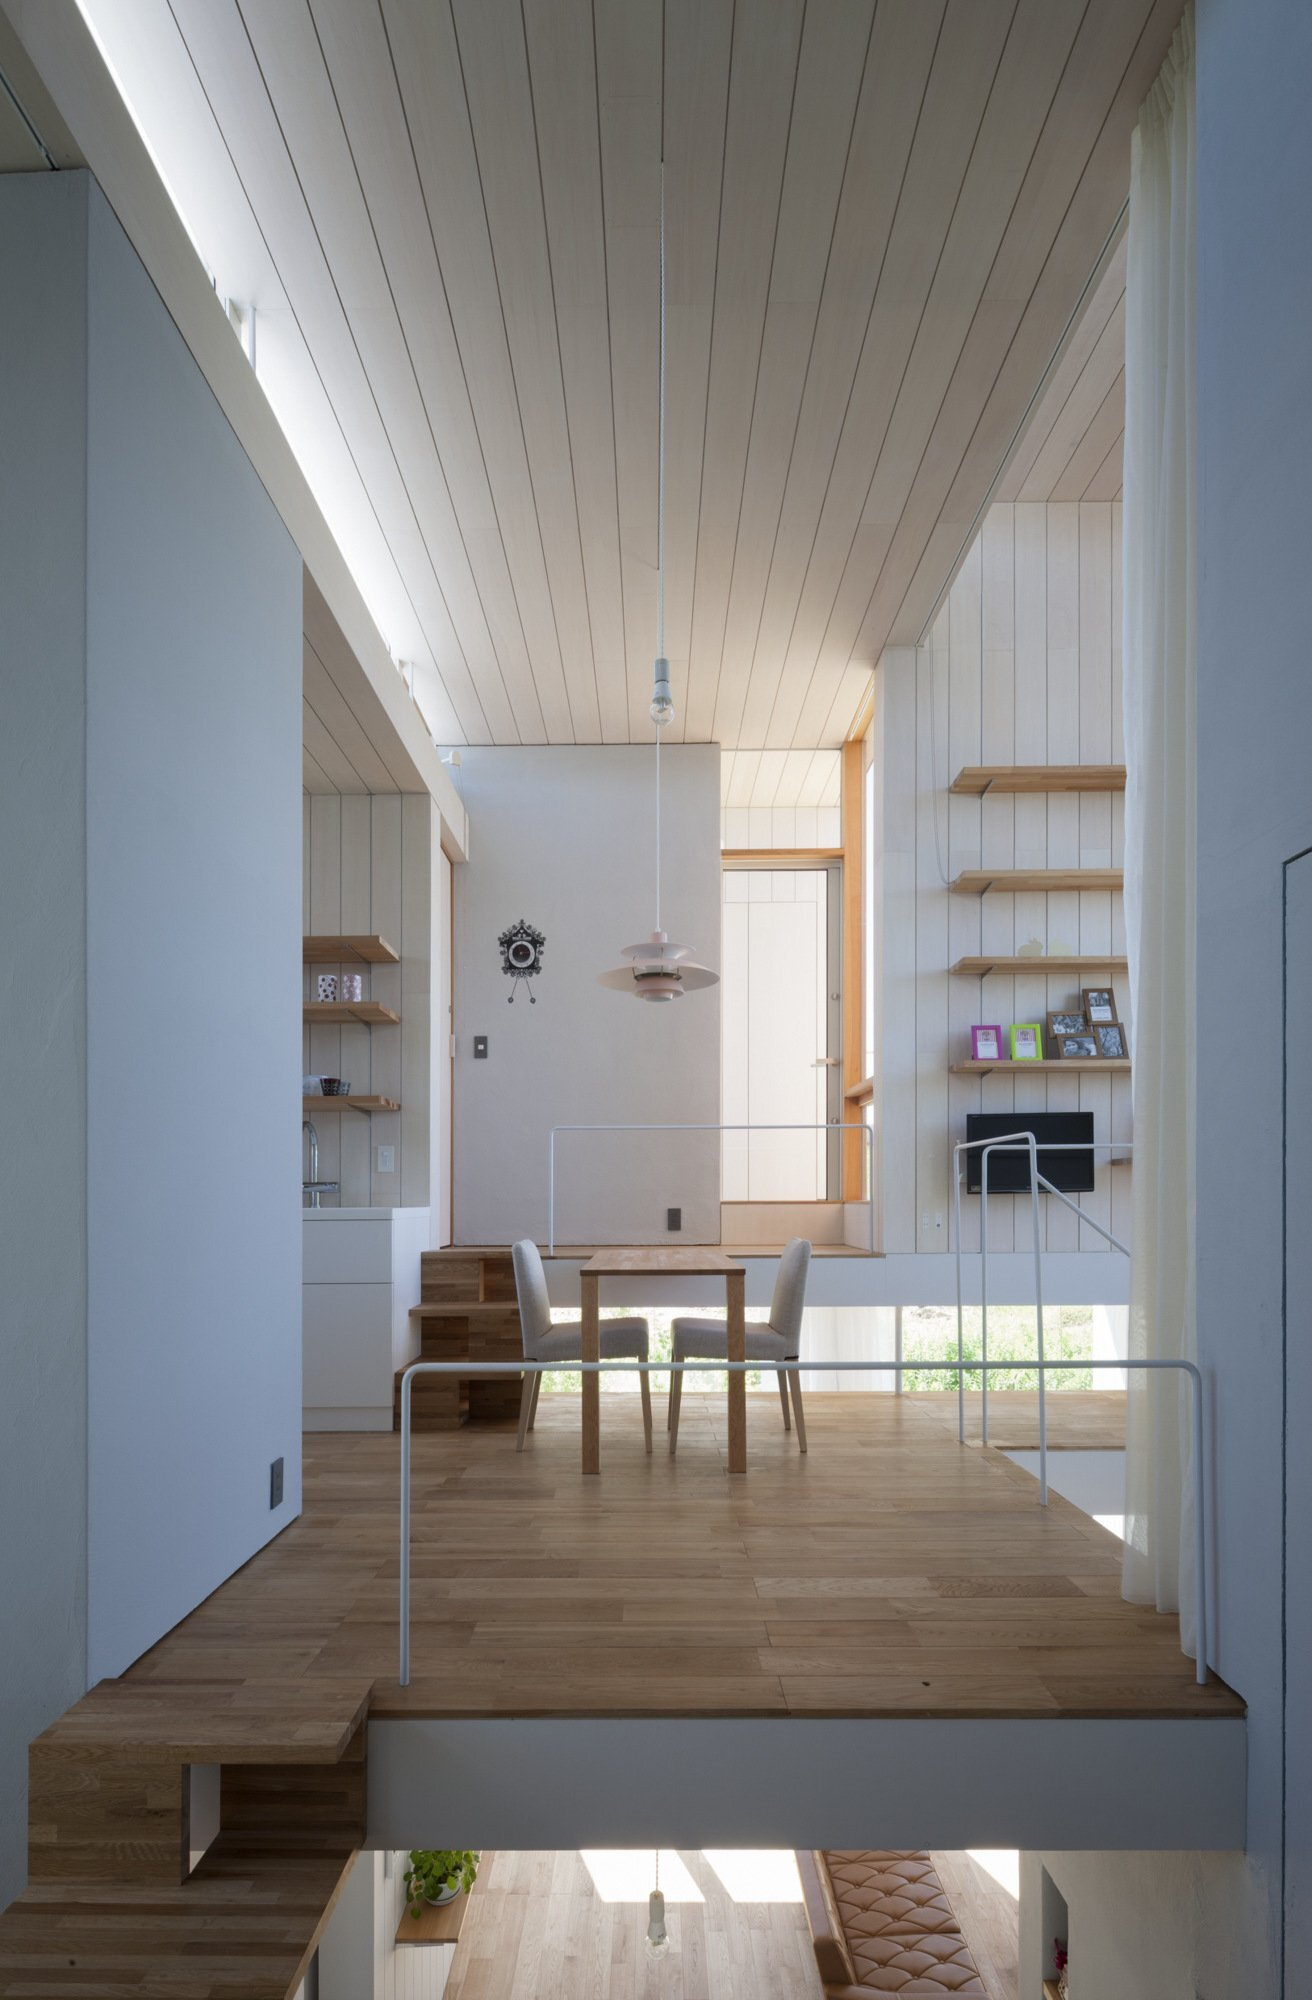 House Passage of Landscape - Japanese House - ihrmk - Toyota Japan - Kitchen and Dining Area - Humble Homes